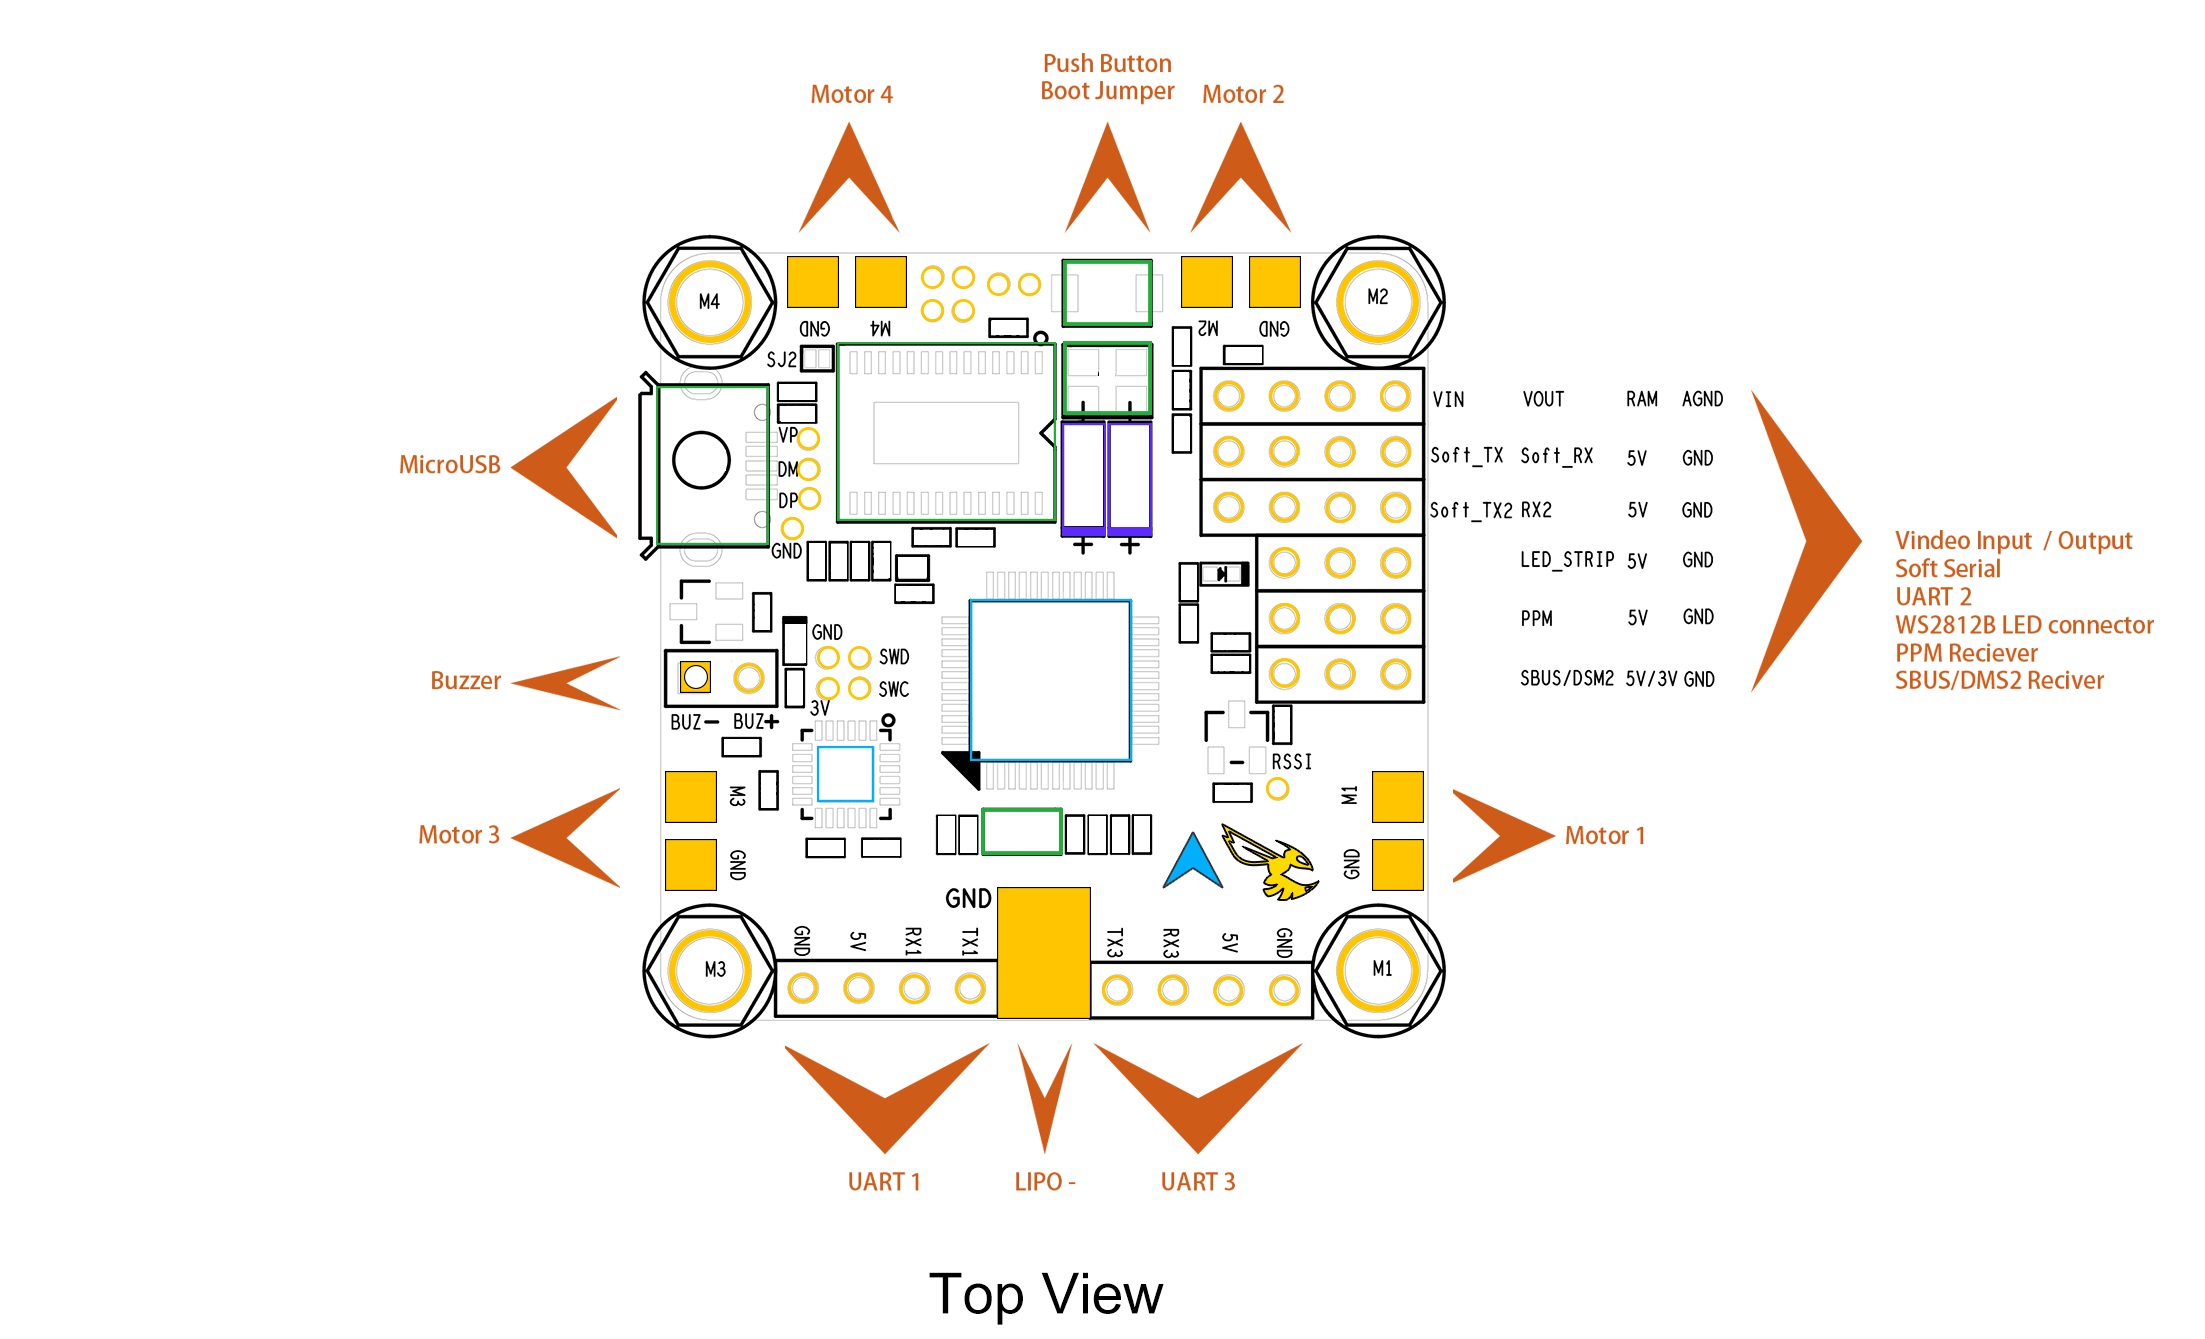 topview omnibus f3 wiring diagram wiring a homeline service panel \u2022 45 63  at reclaimingppi.co